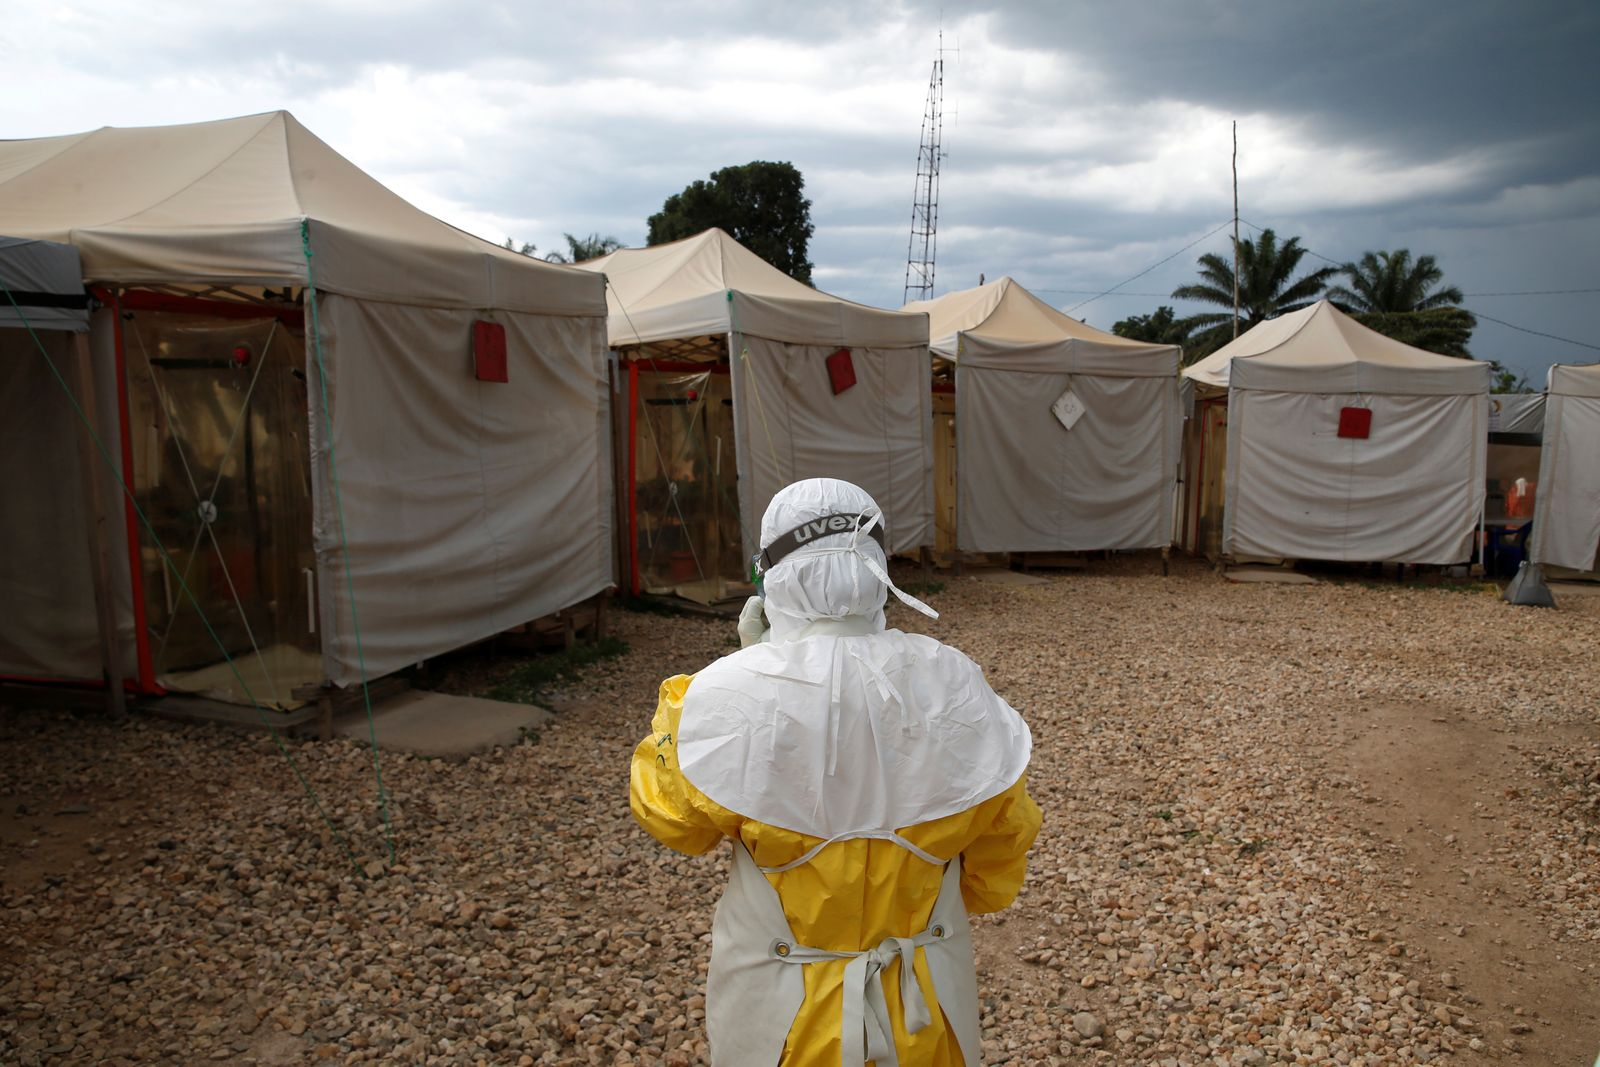 A health worker wearing Ebola protection gear, walks before entering the Biosecure Emergency Care Units at the Alima Ebola treatment centre in Beni